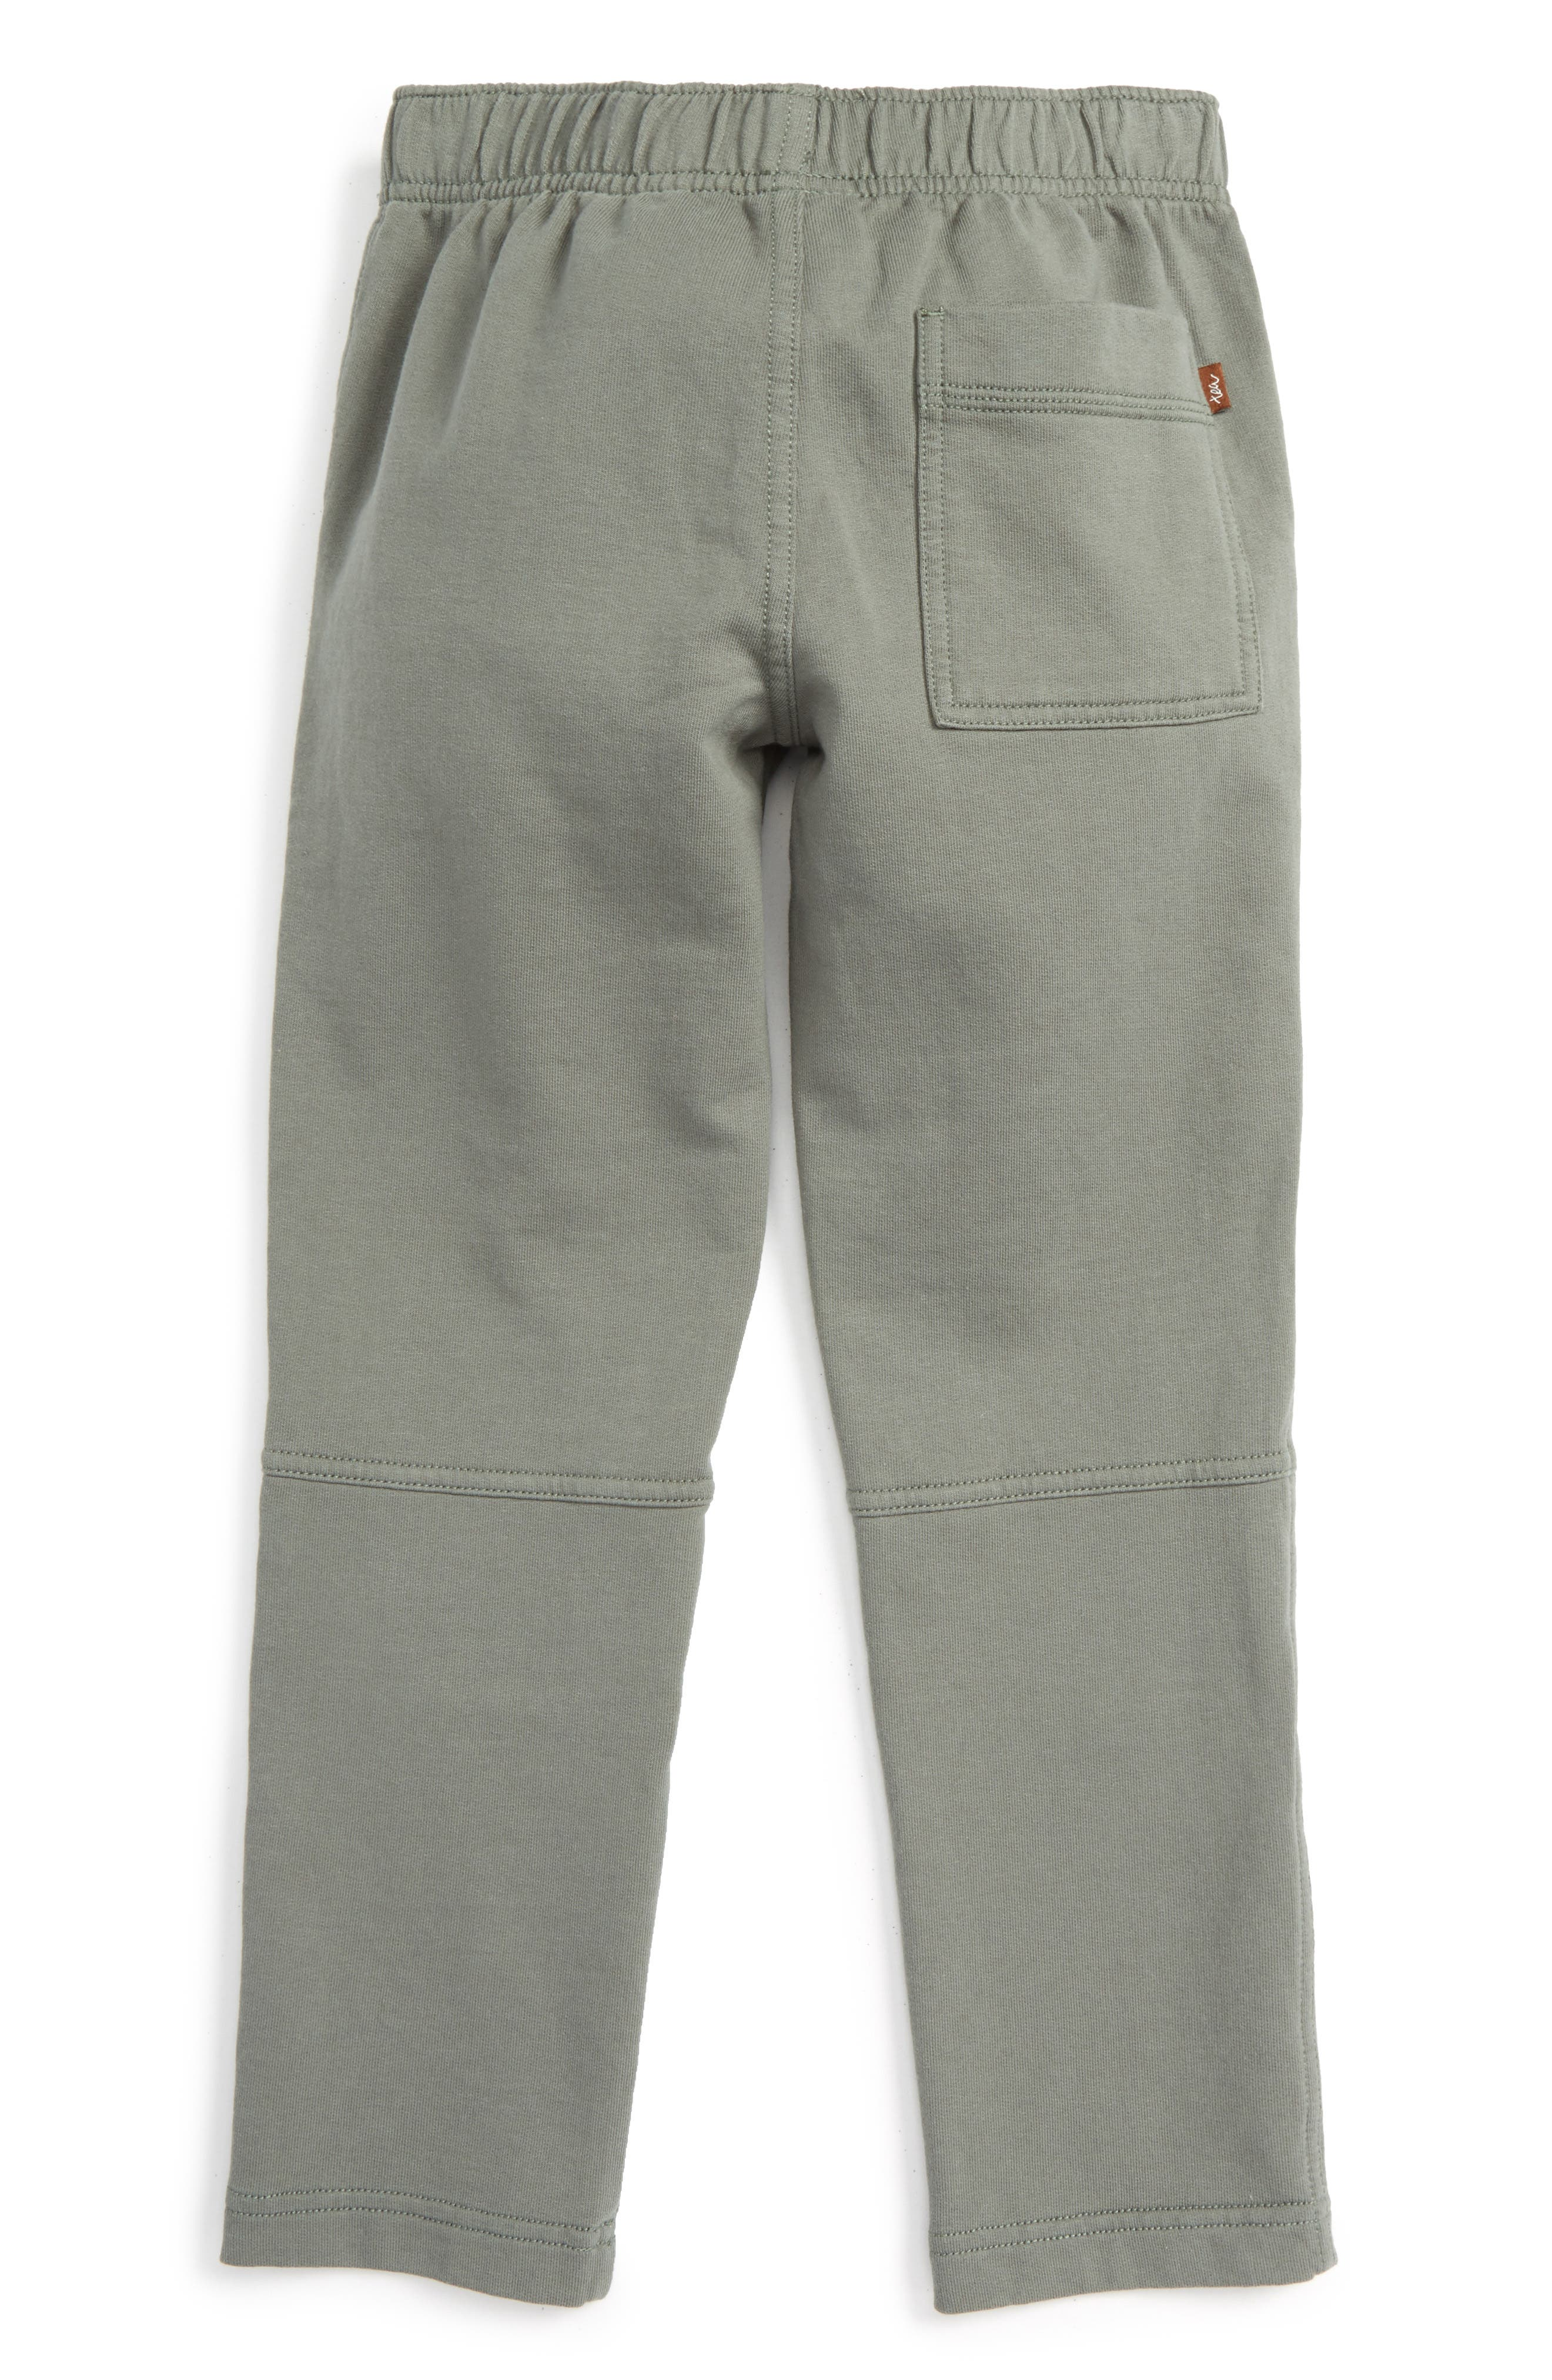 French Terry Pants,                             Alternate thumbnail 2, color,                             OLIVE DRAB